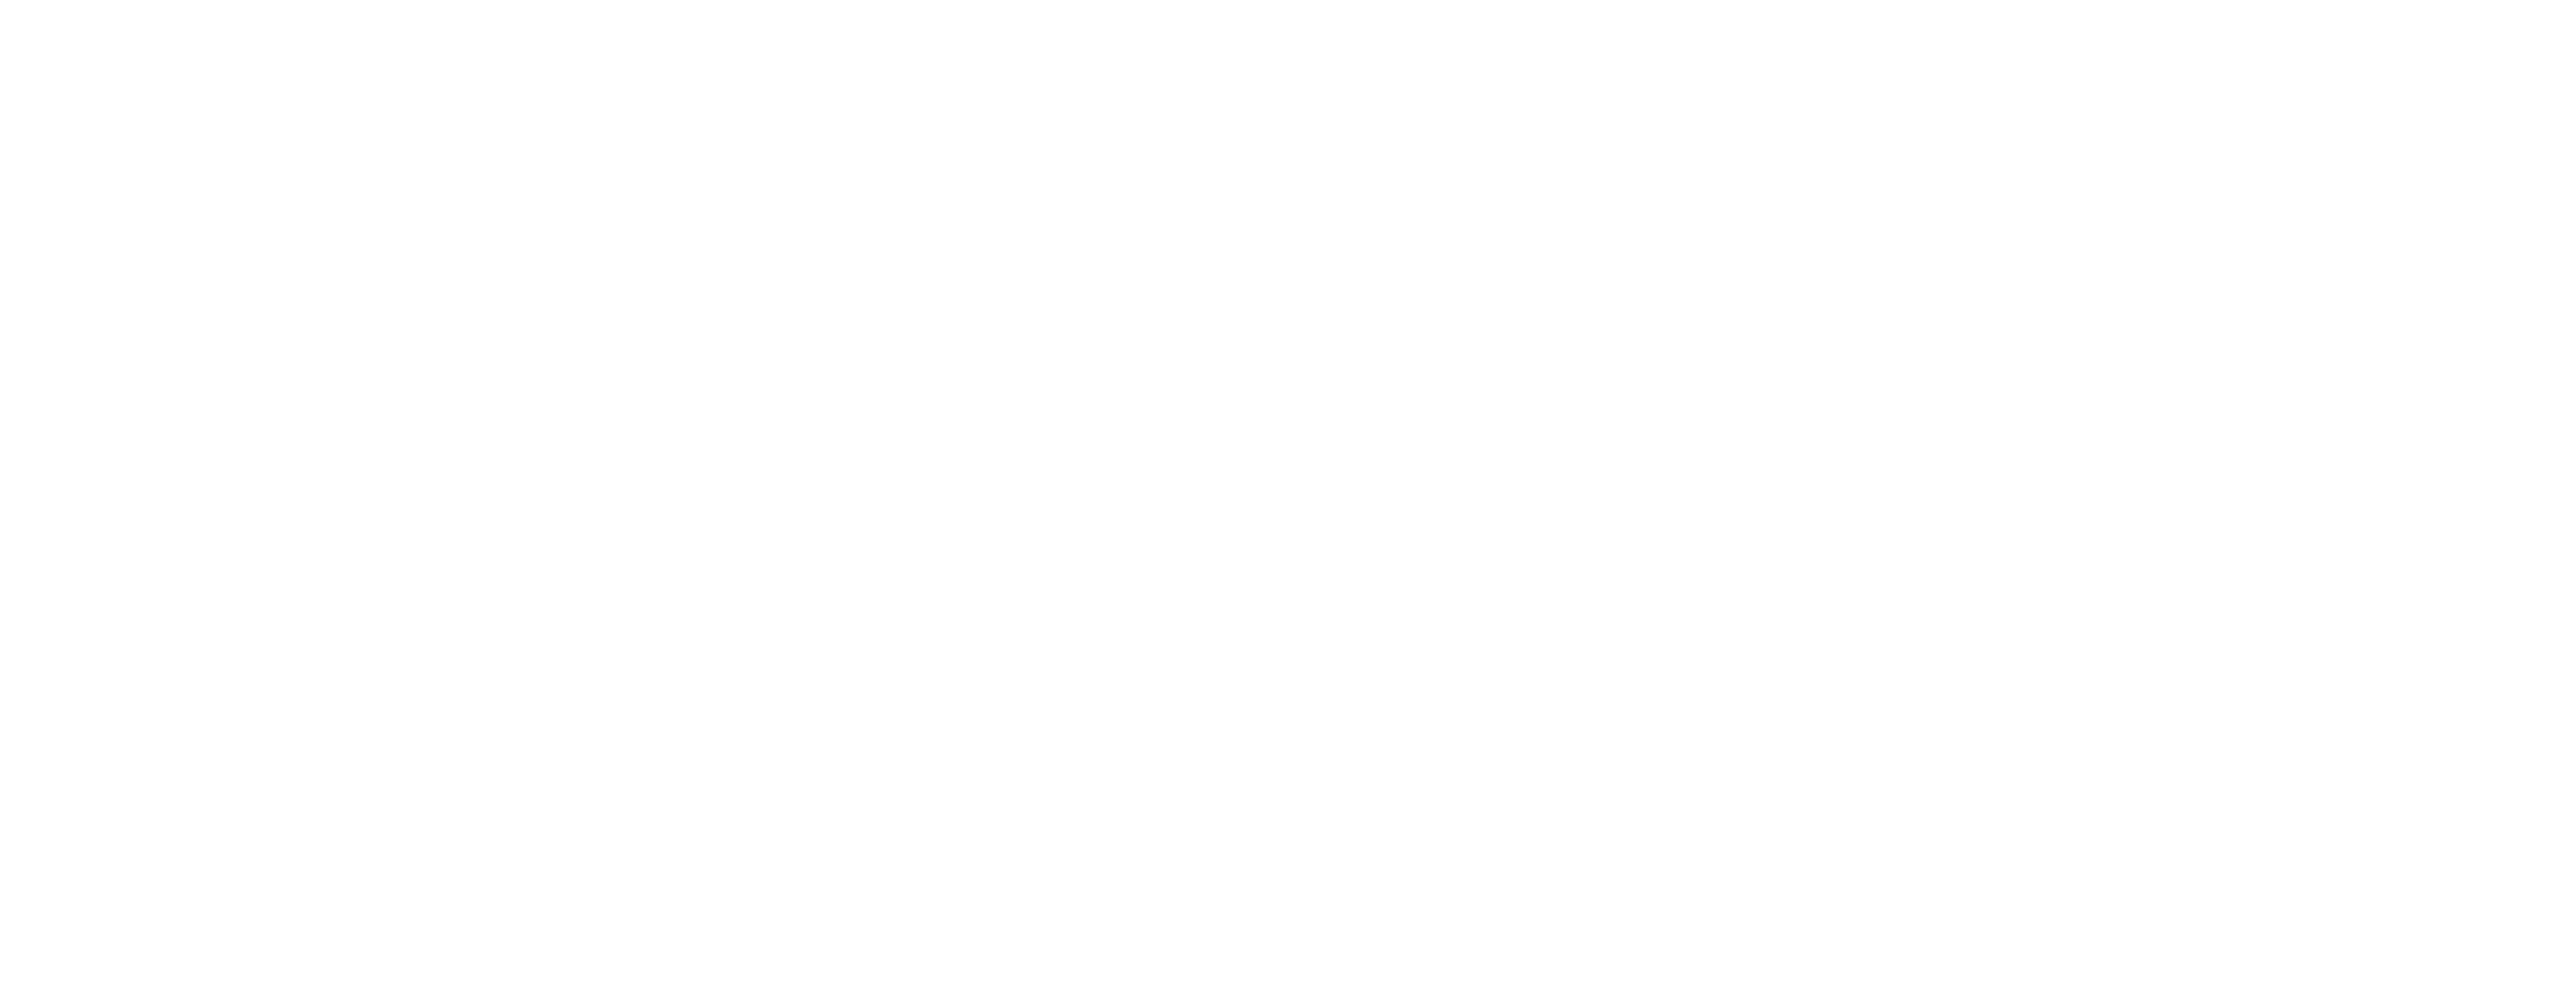 Logo of The Methuen Arms - Butcombe Brewery Co.